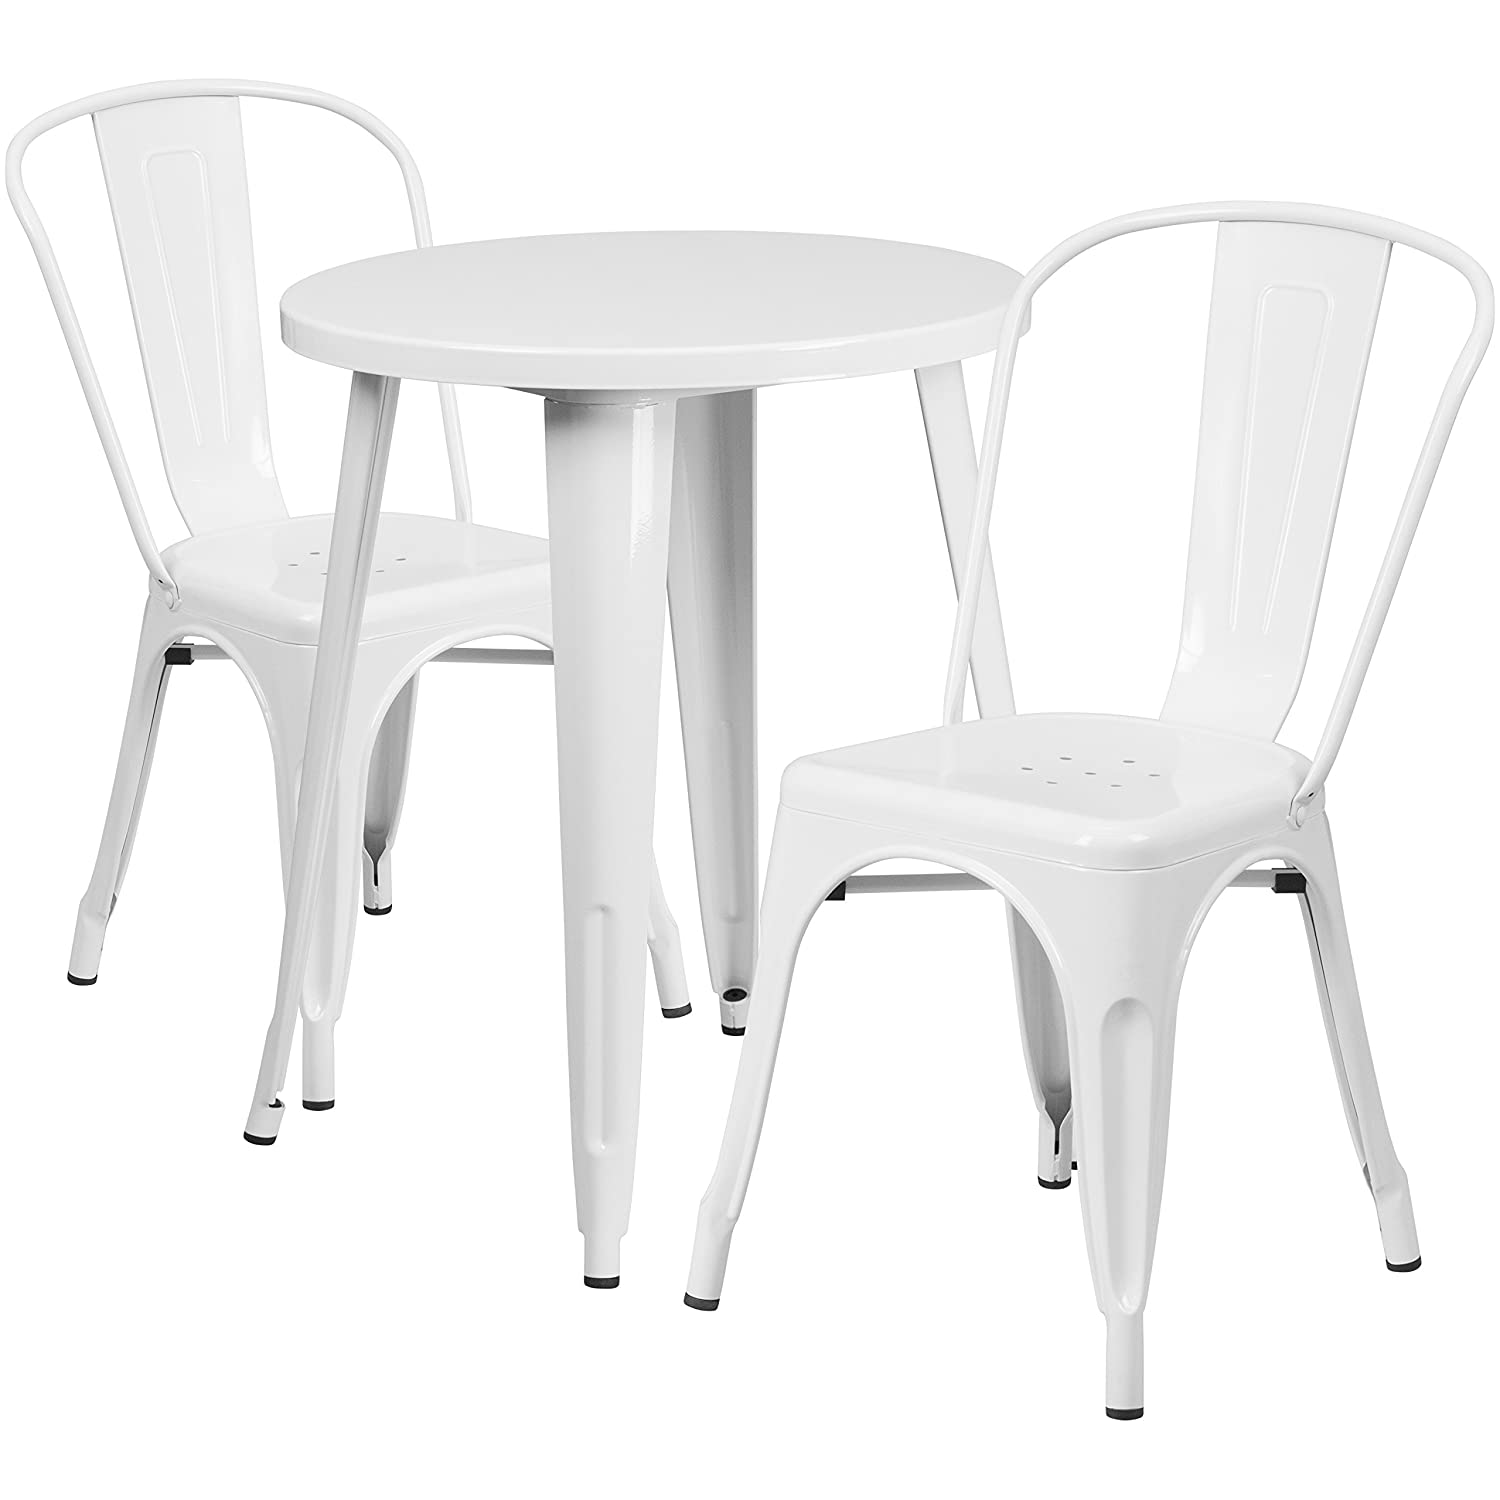 Amazon com flash furniture 24 round white metal indoor outdoor table set with 2 cafe chairs kitchen dining